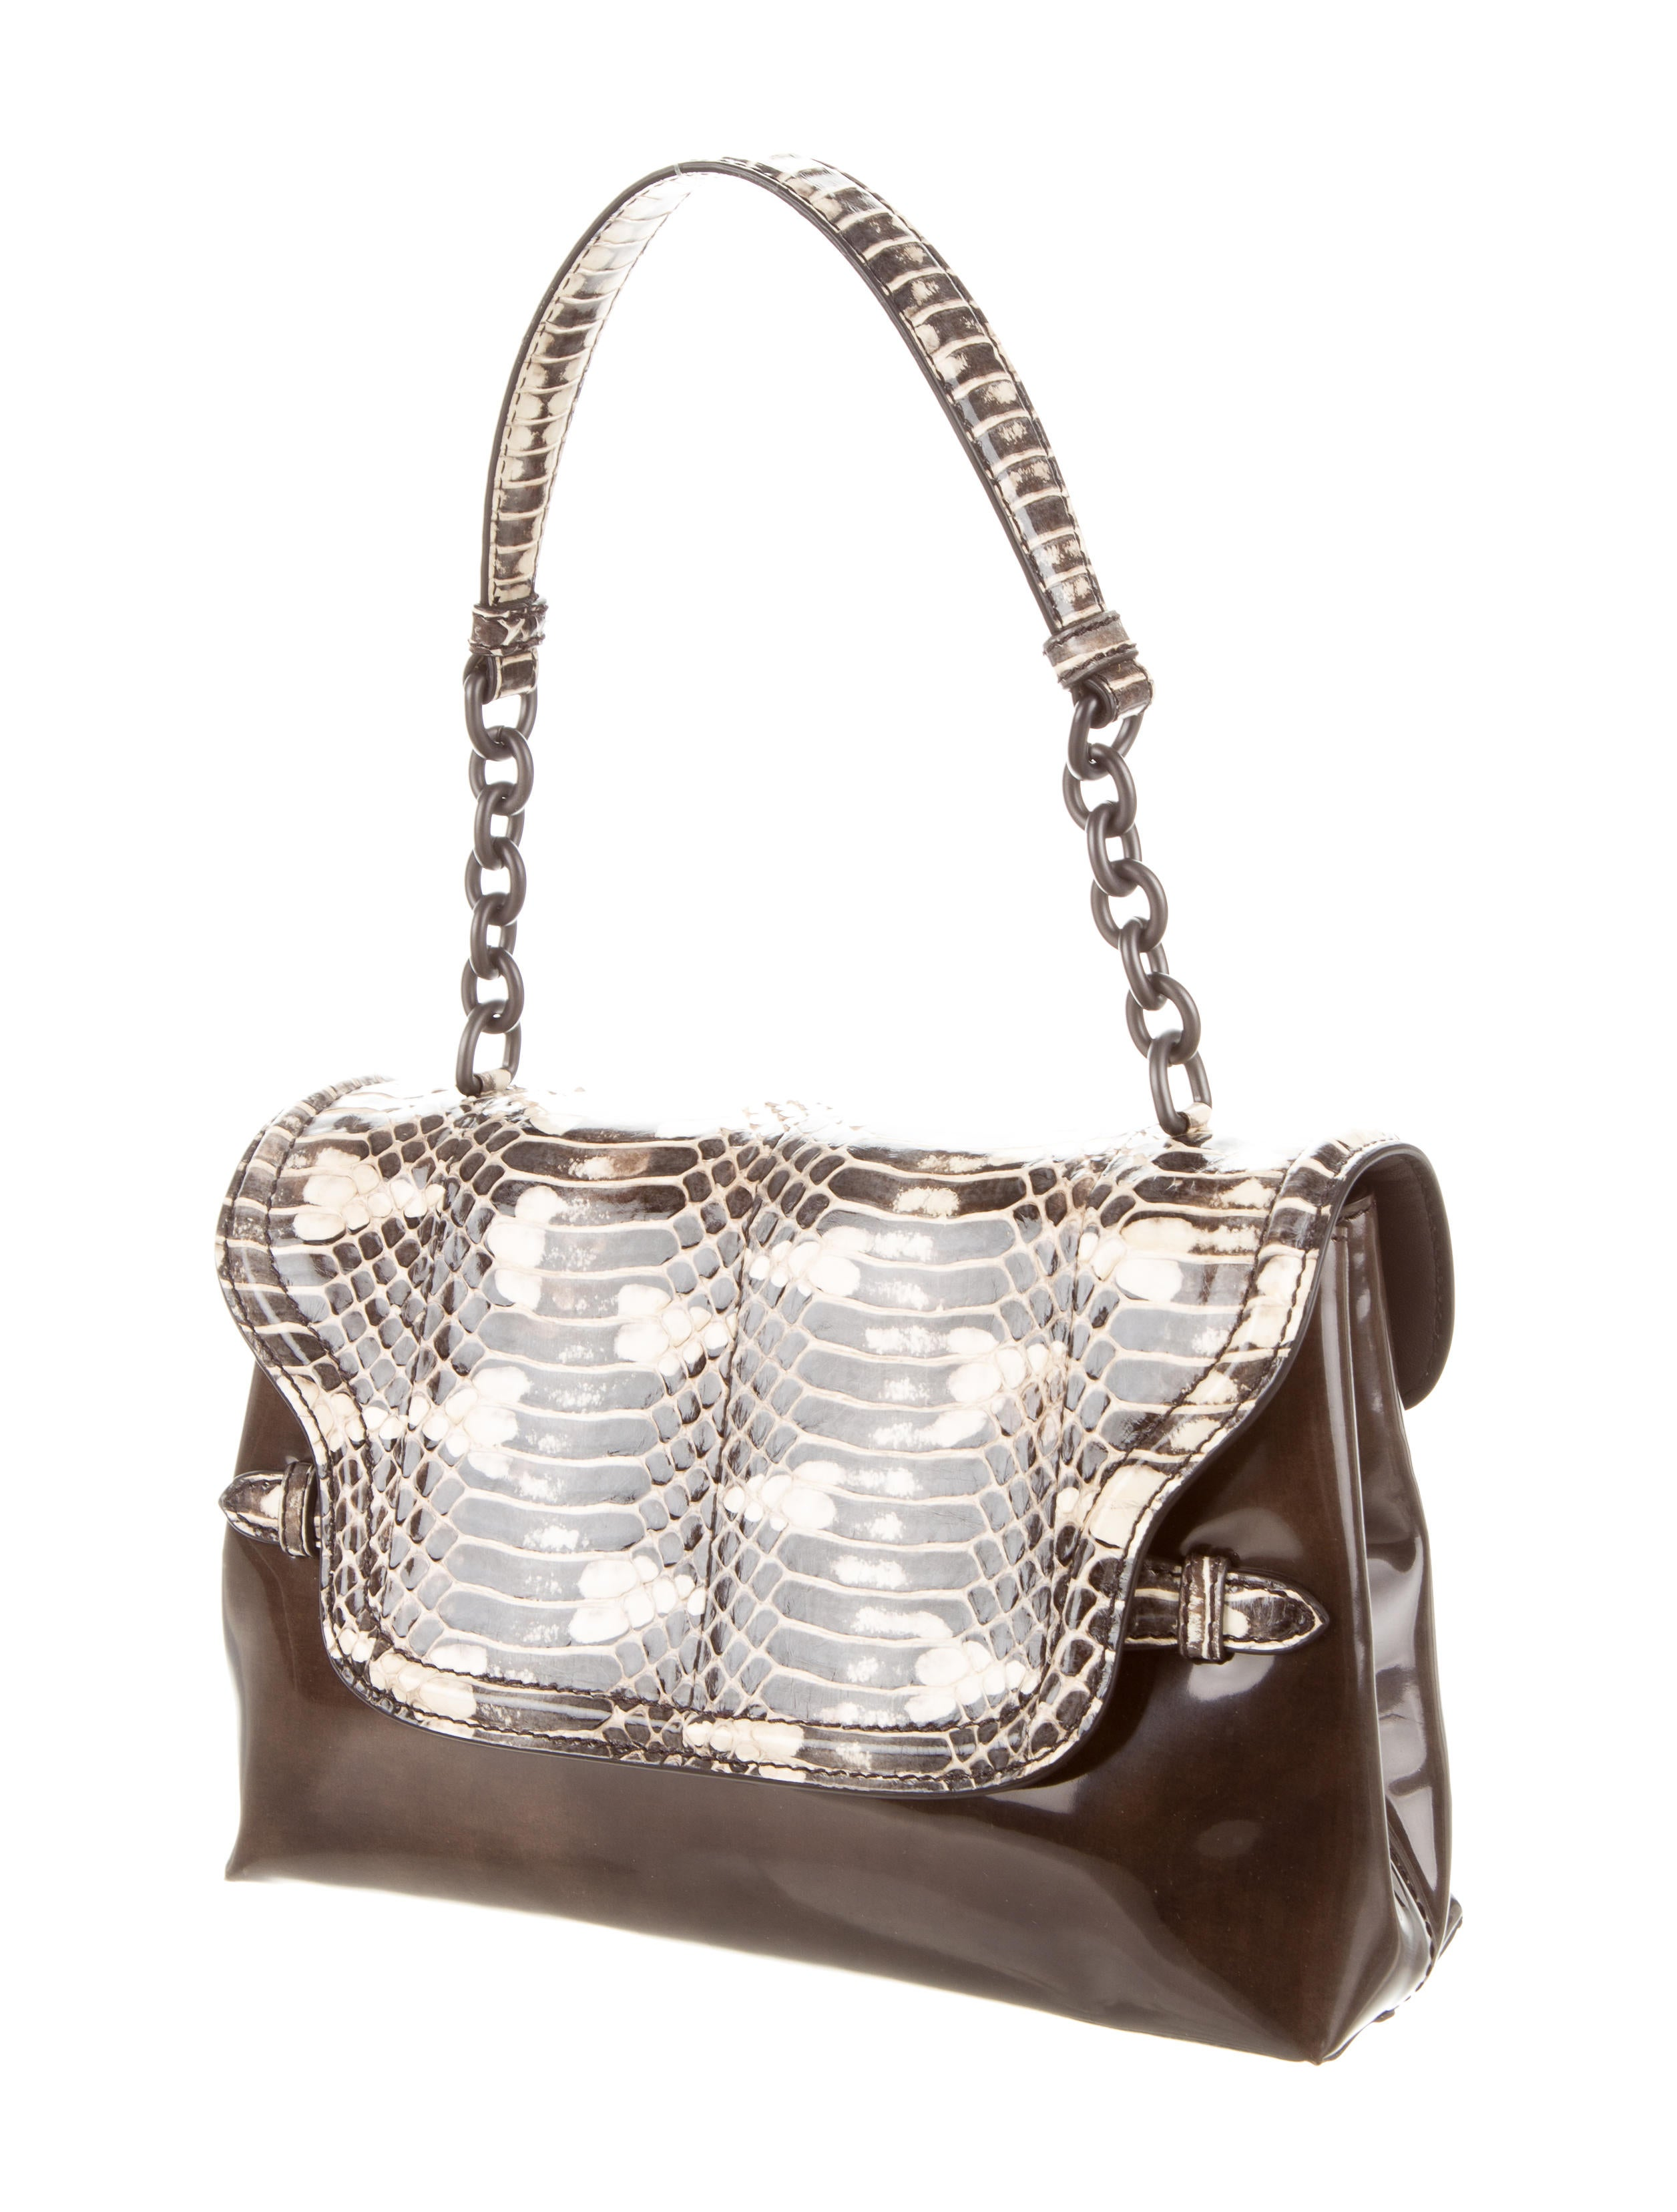 41f1ac49f5 Bottega Veneta Python-Accented Glazed Shoulder Bag - Handbags .